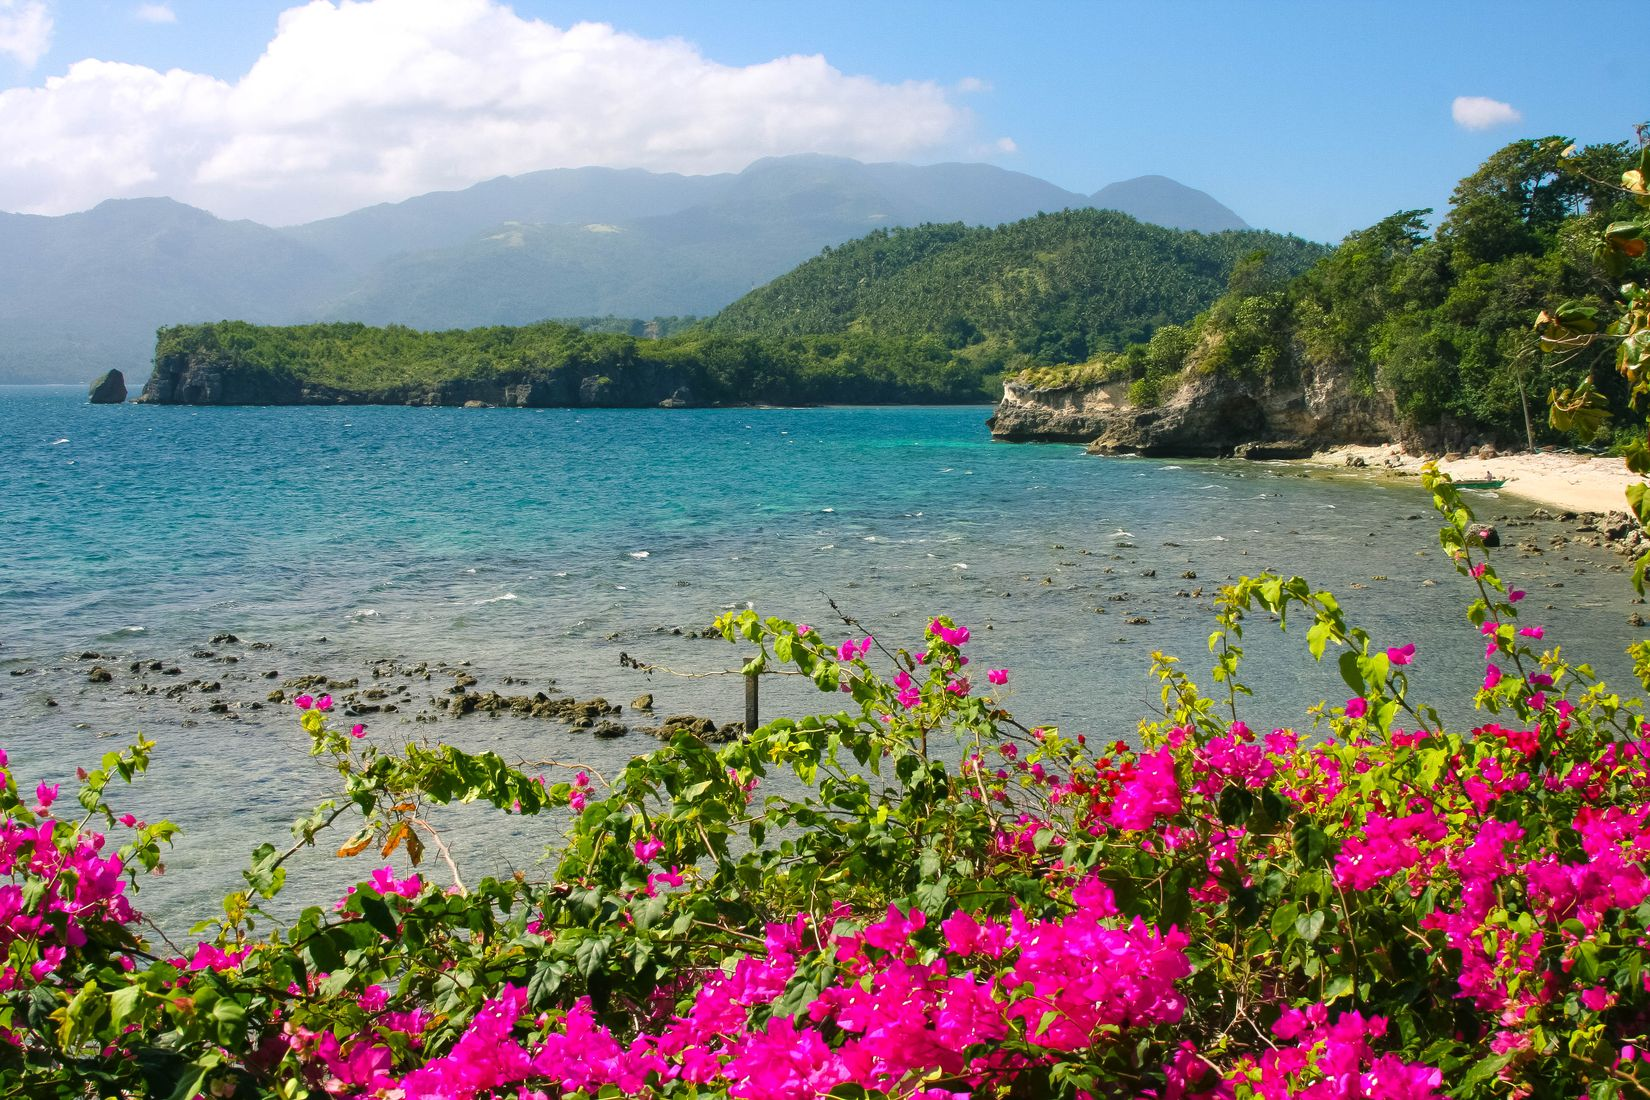 Magenta flowers bloom along a rocky and sandy coast facing turquoise waters